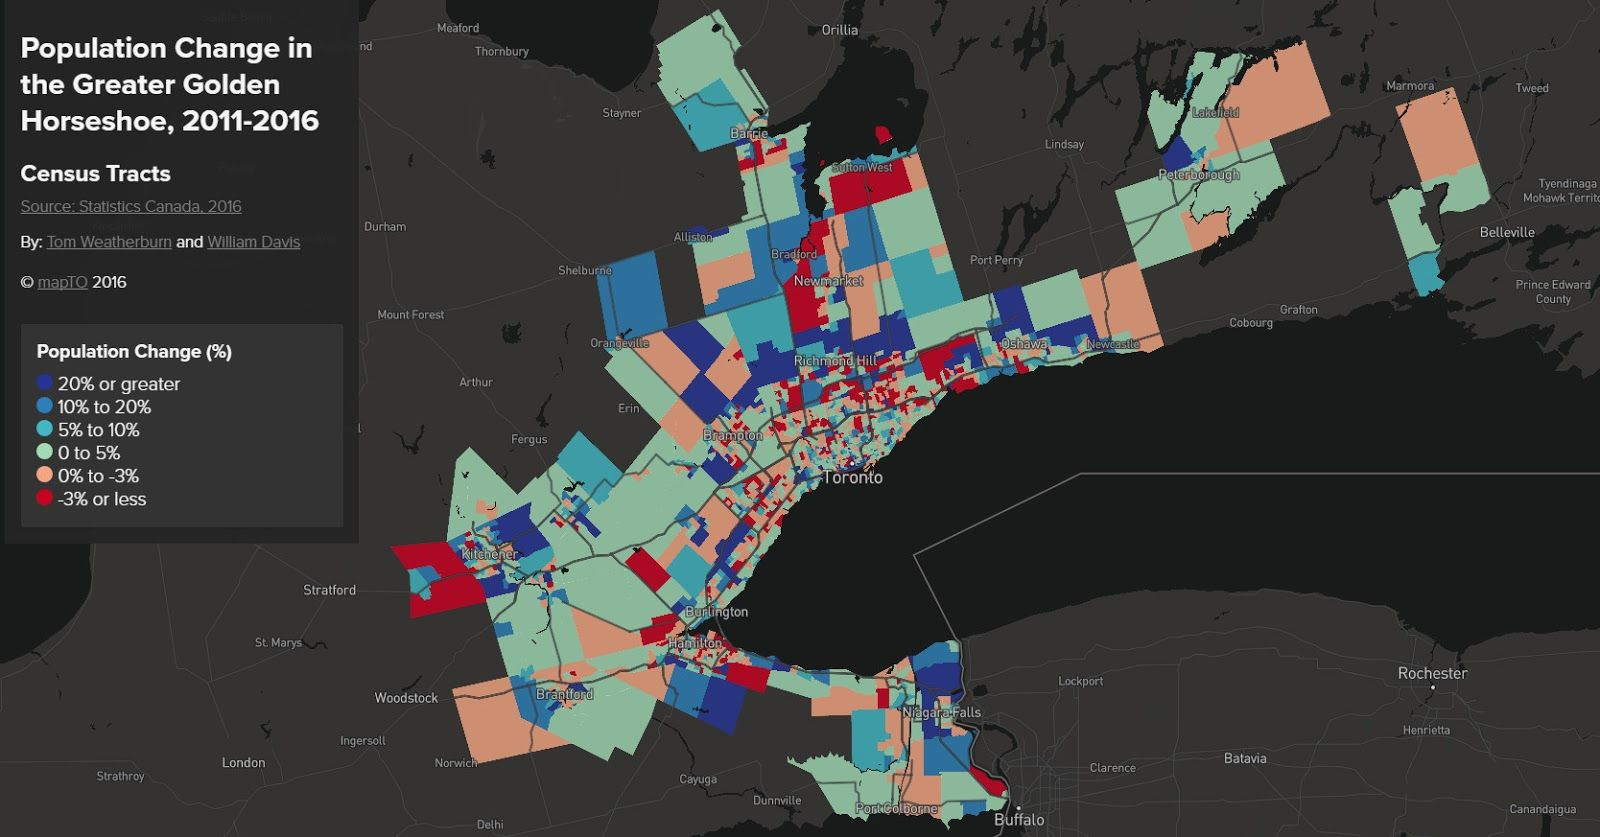 Population Change in the Greater Golden Horseshoe